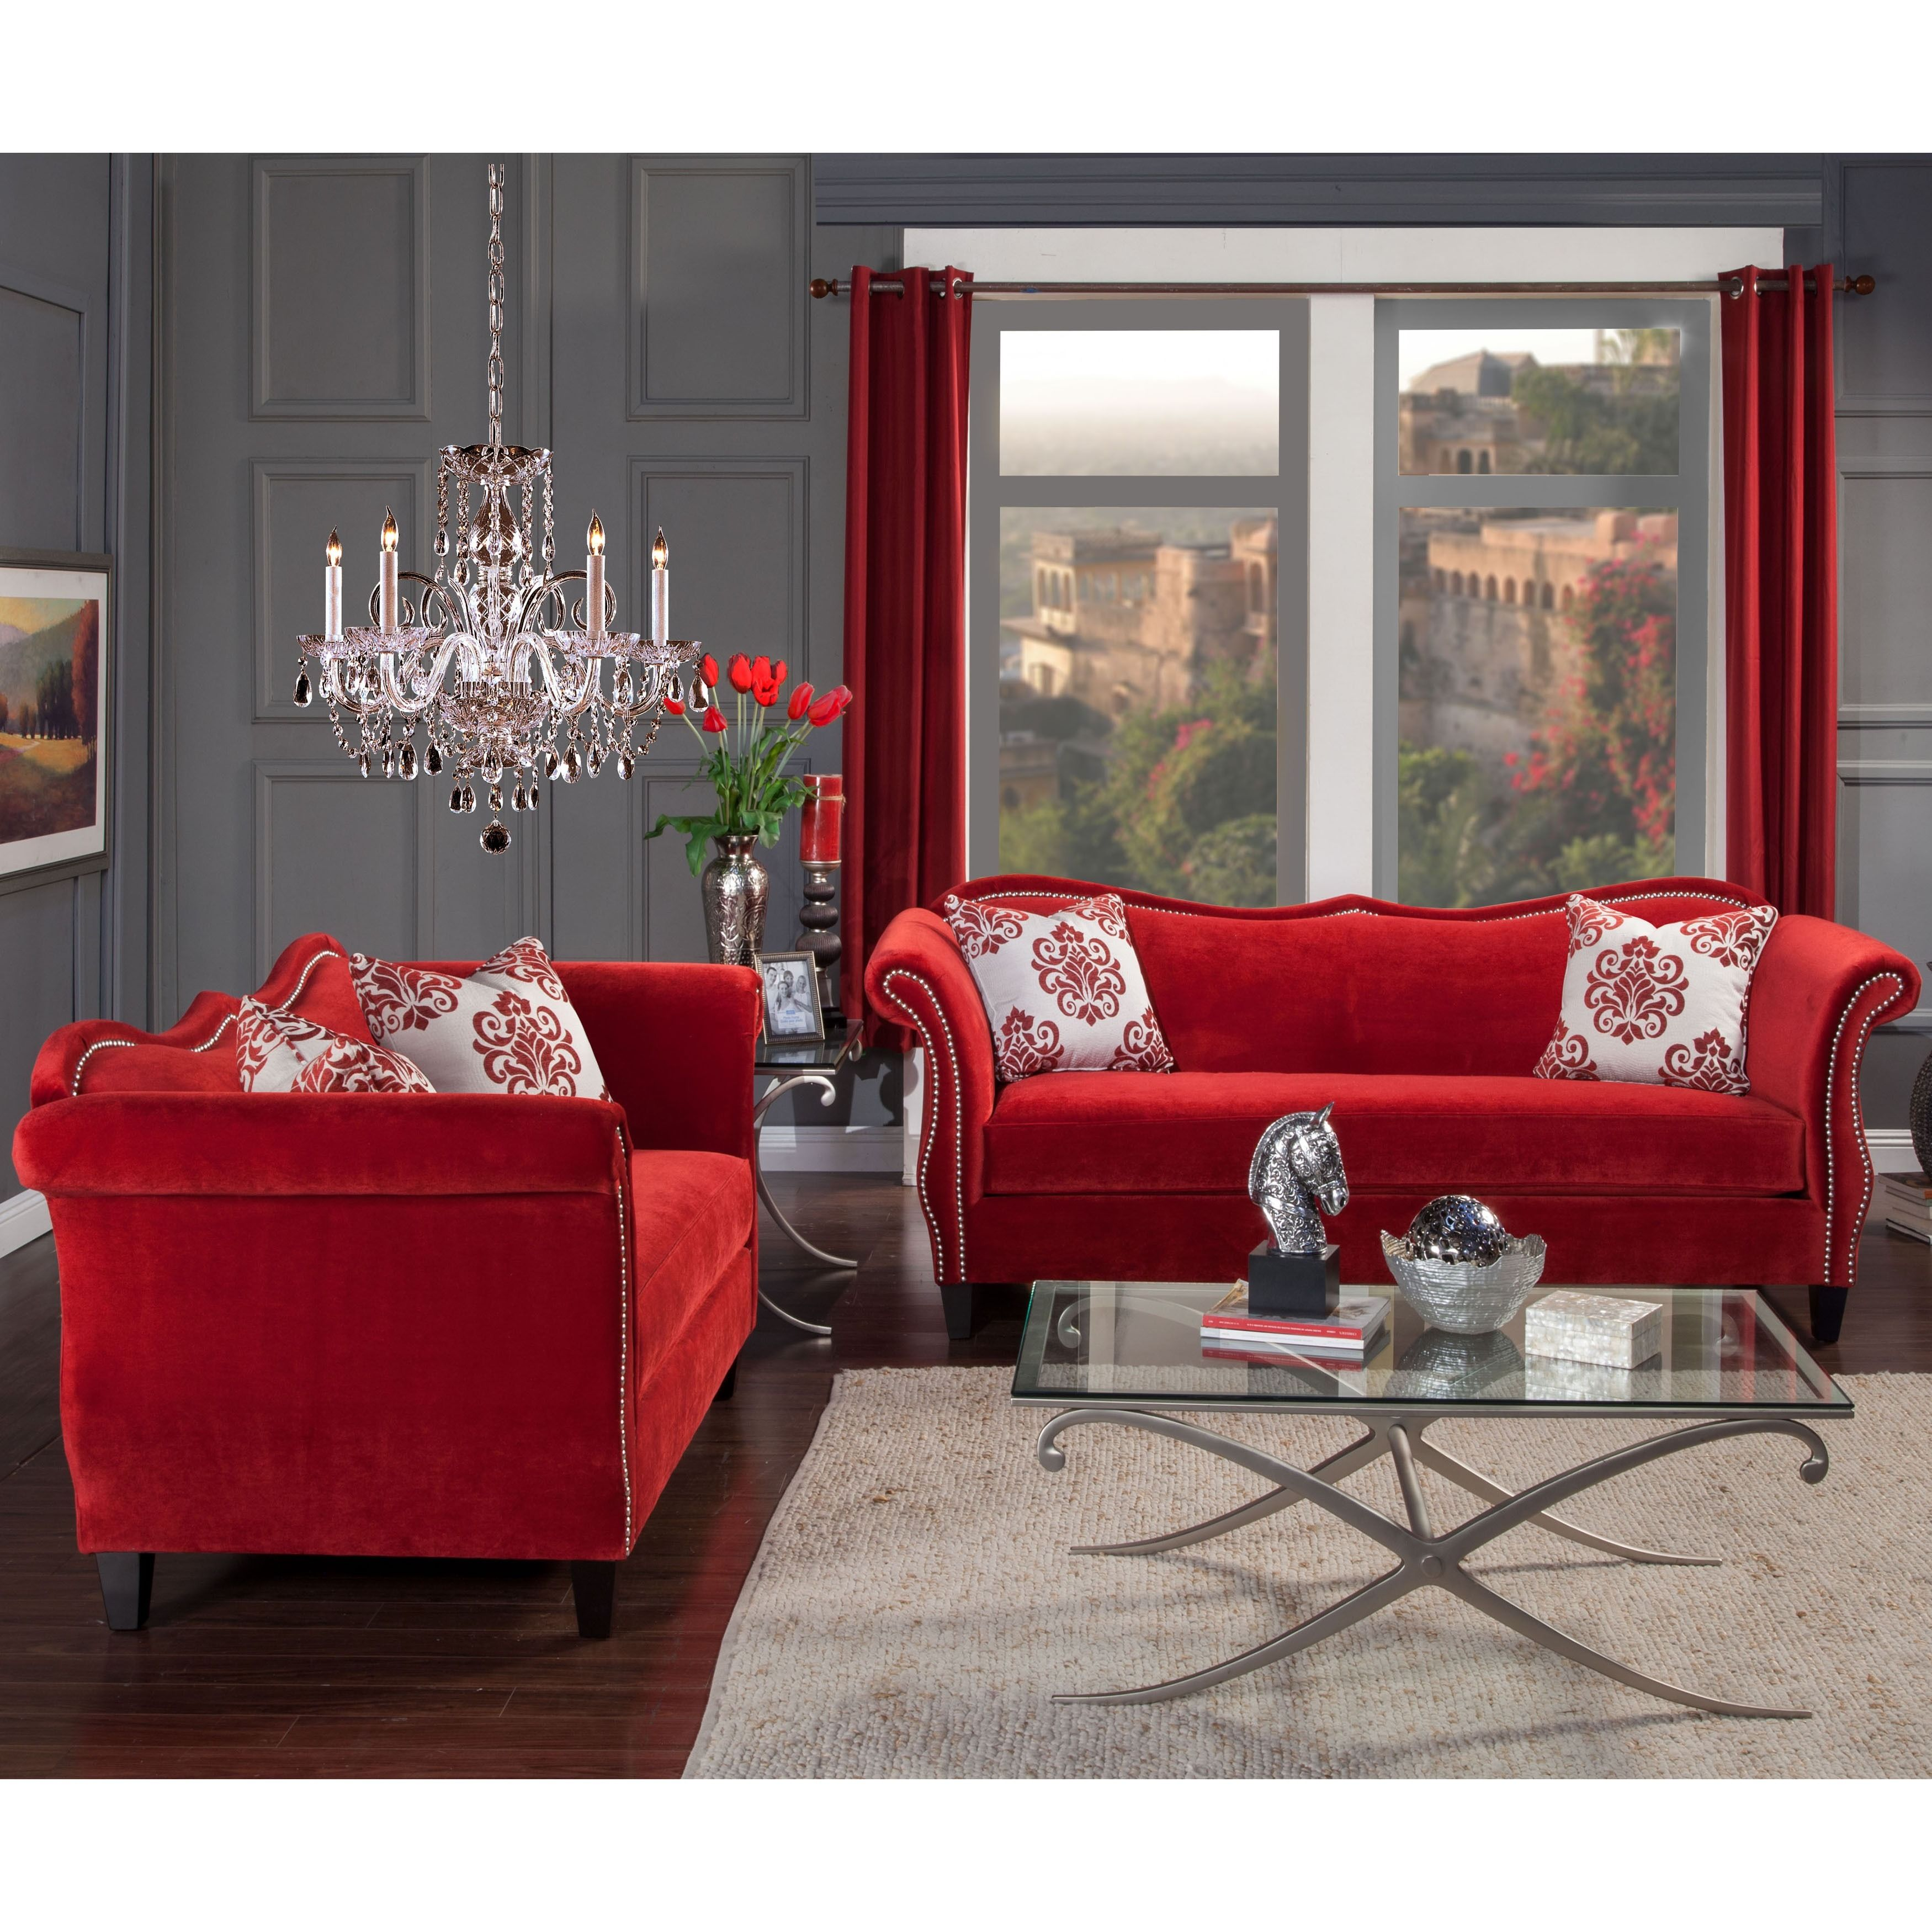 Red sofa with black and white contrast Decor